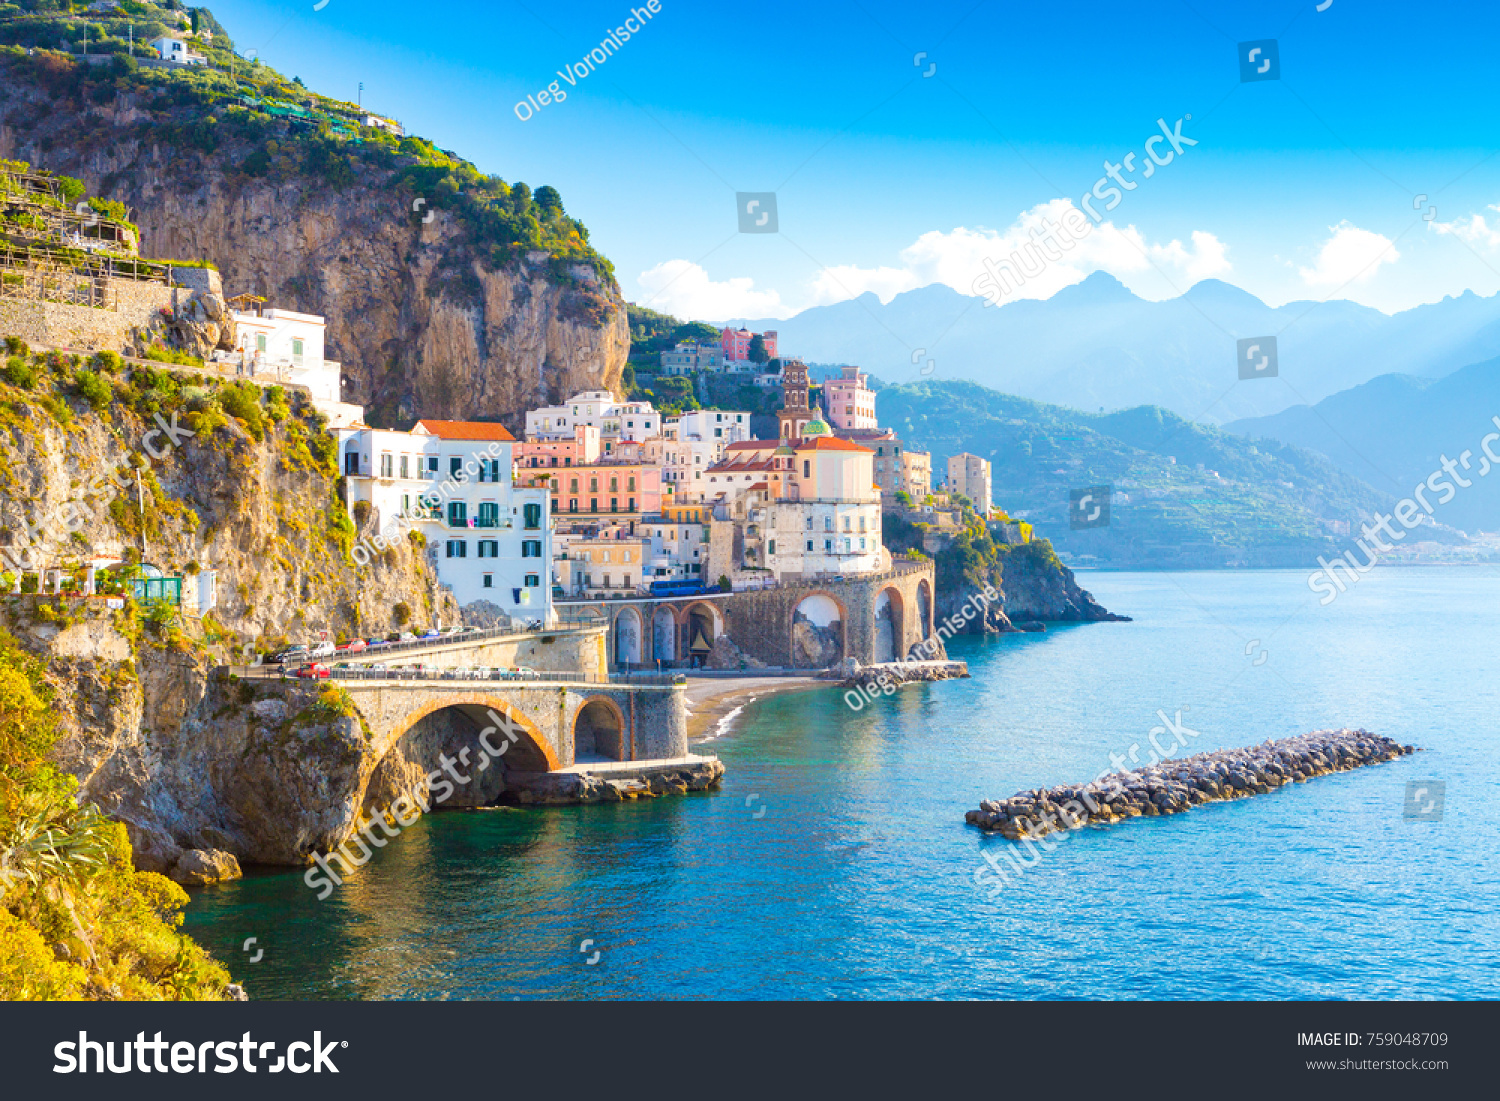 Morning view of Amalfi cityscape on coast line of mediterranean sea, Italy #759048709